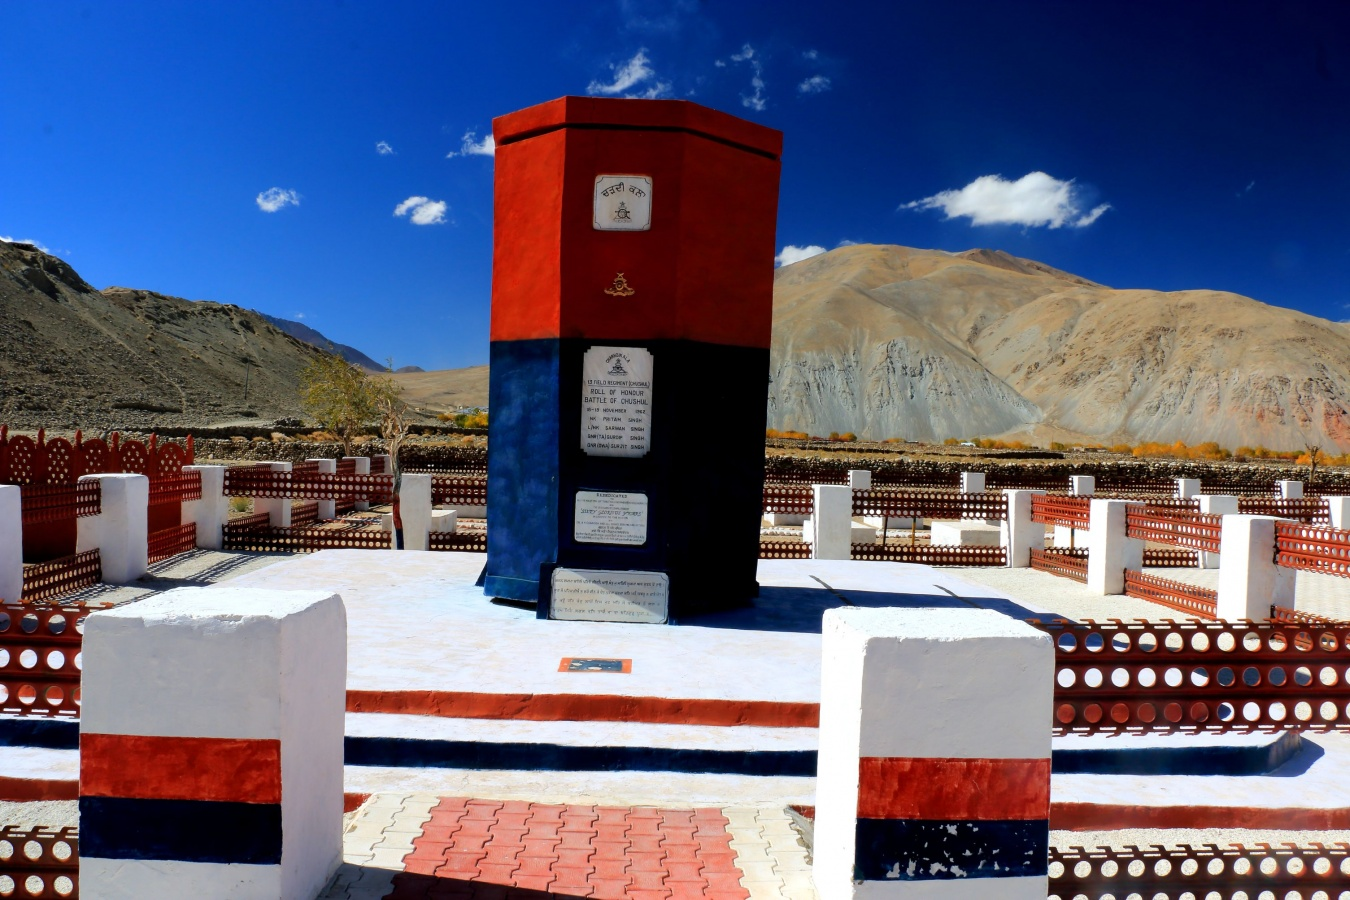 Special Frontier Force thwarts Chinese incursion in Ladakh, Kashmir, India. The 1962 India-China War Memorial at Chushul, Ladakh.